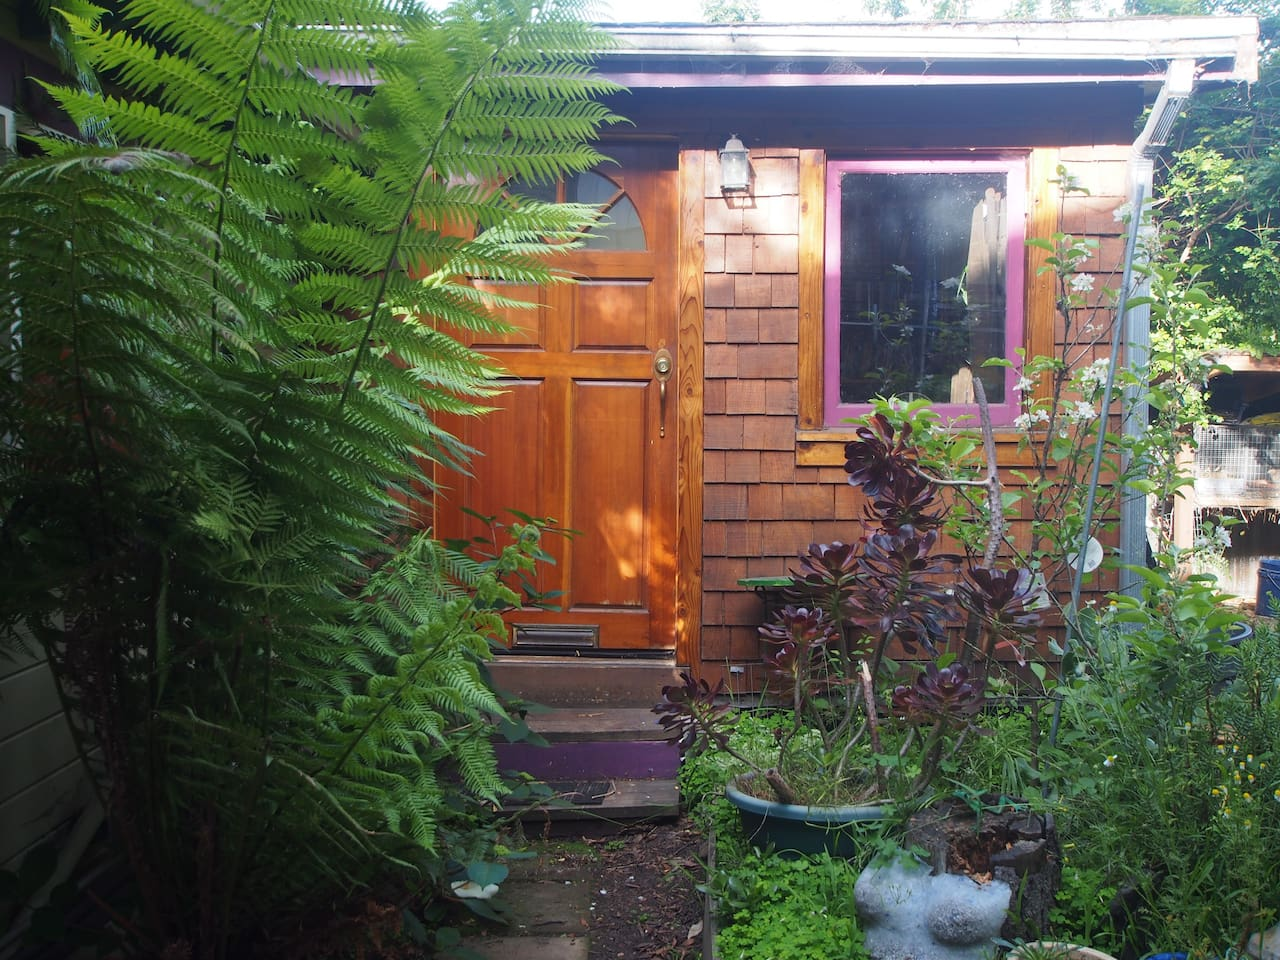 Hobbit house and fern